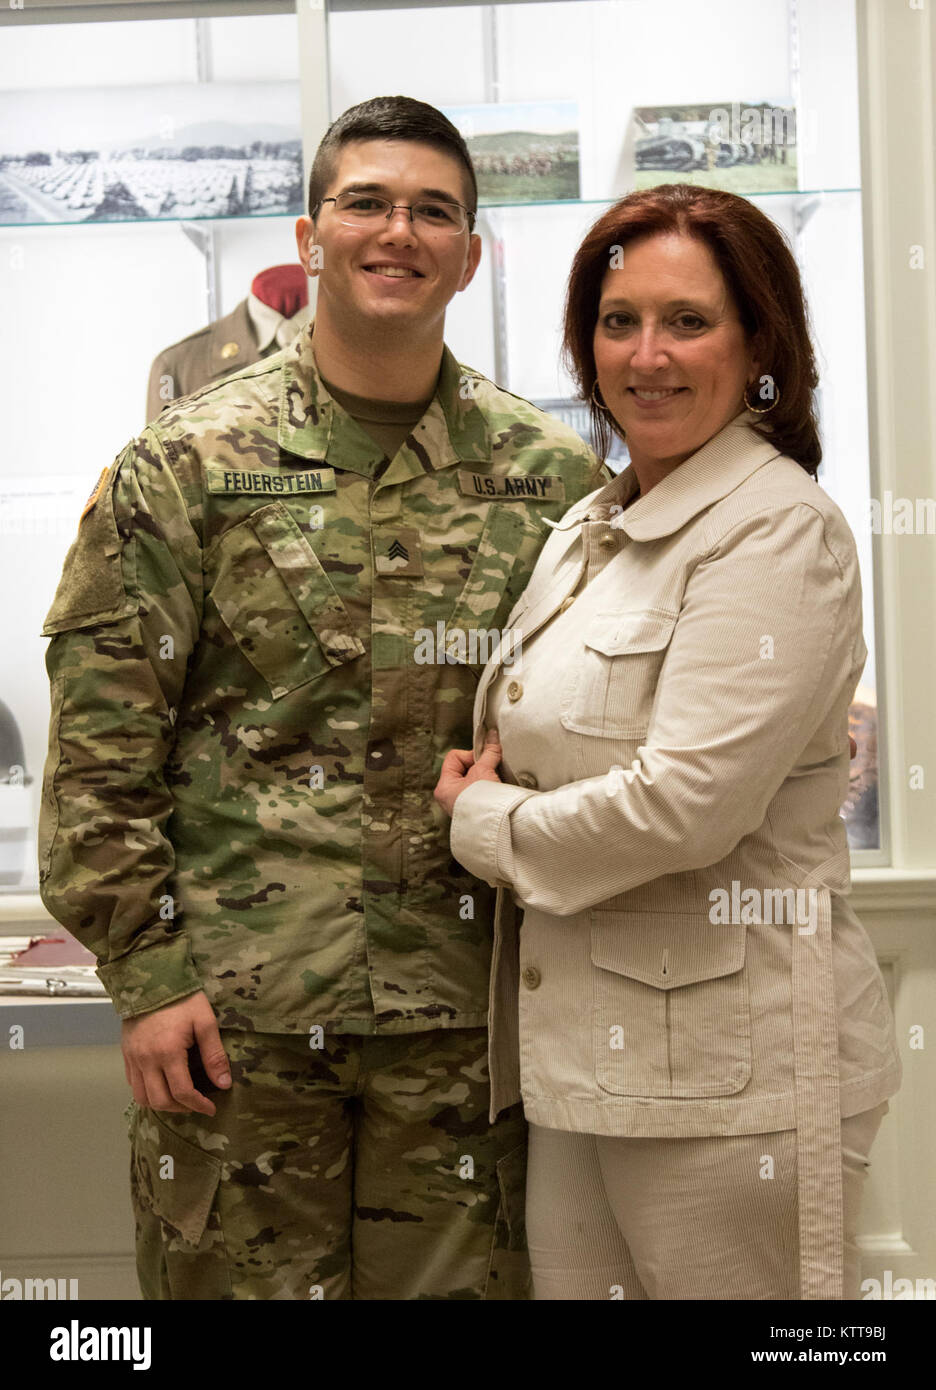 U.S. Army Spc. Max Feuerstein, a paralegal noncommissioned officer assigned to the Headquarters and Supply Company, Stock Photo